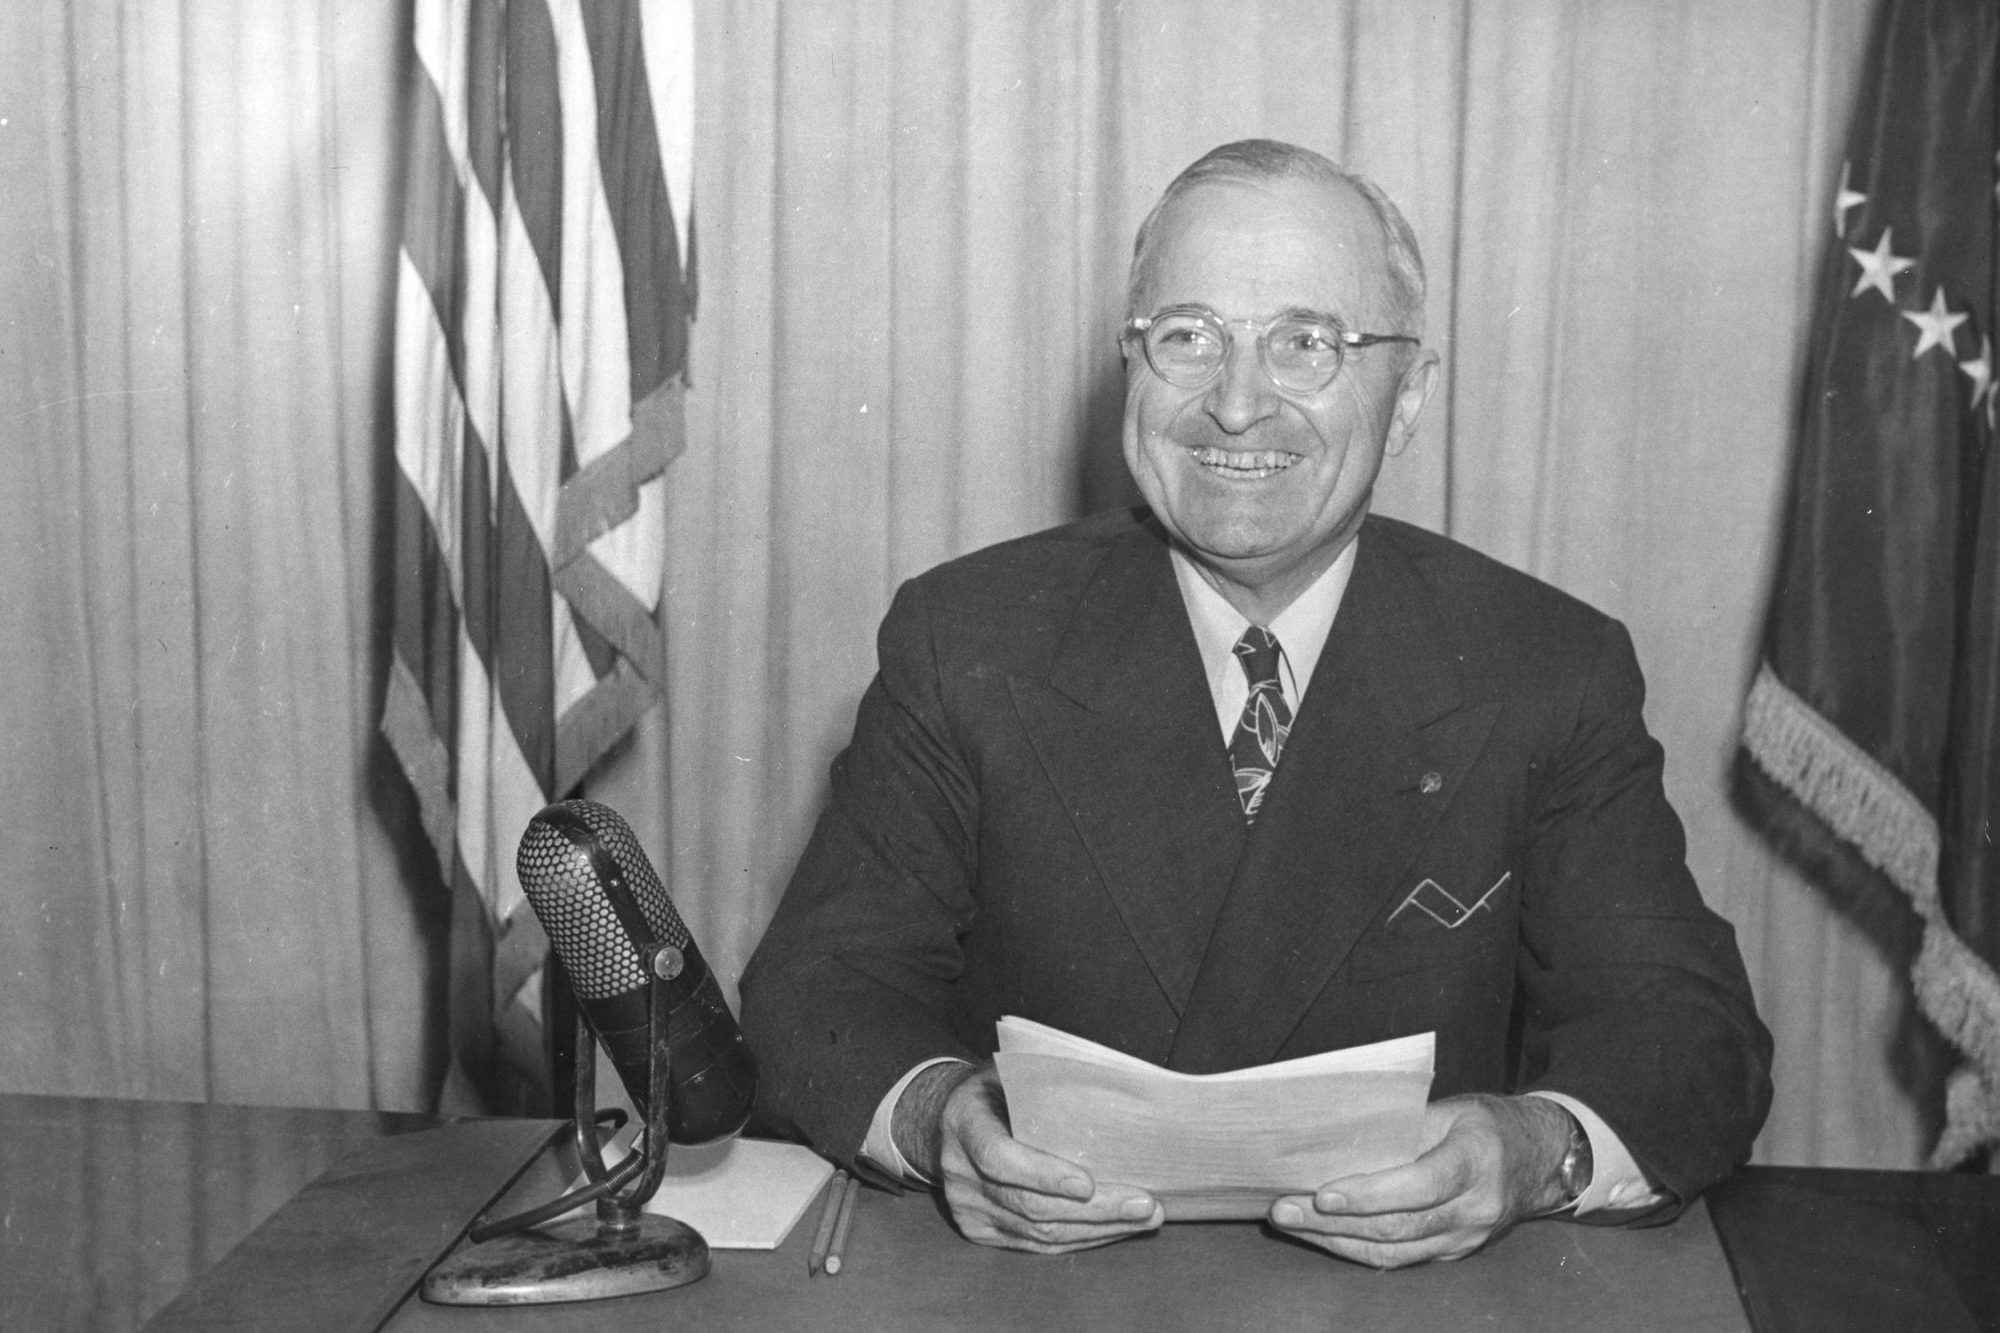 EC: Harry S. Truman Started Every Day with Bourbon